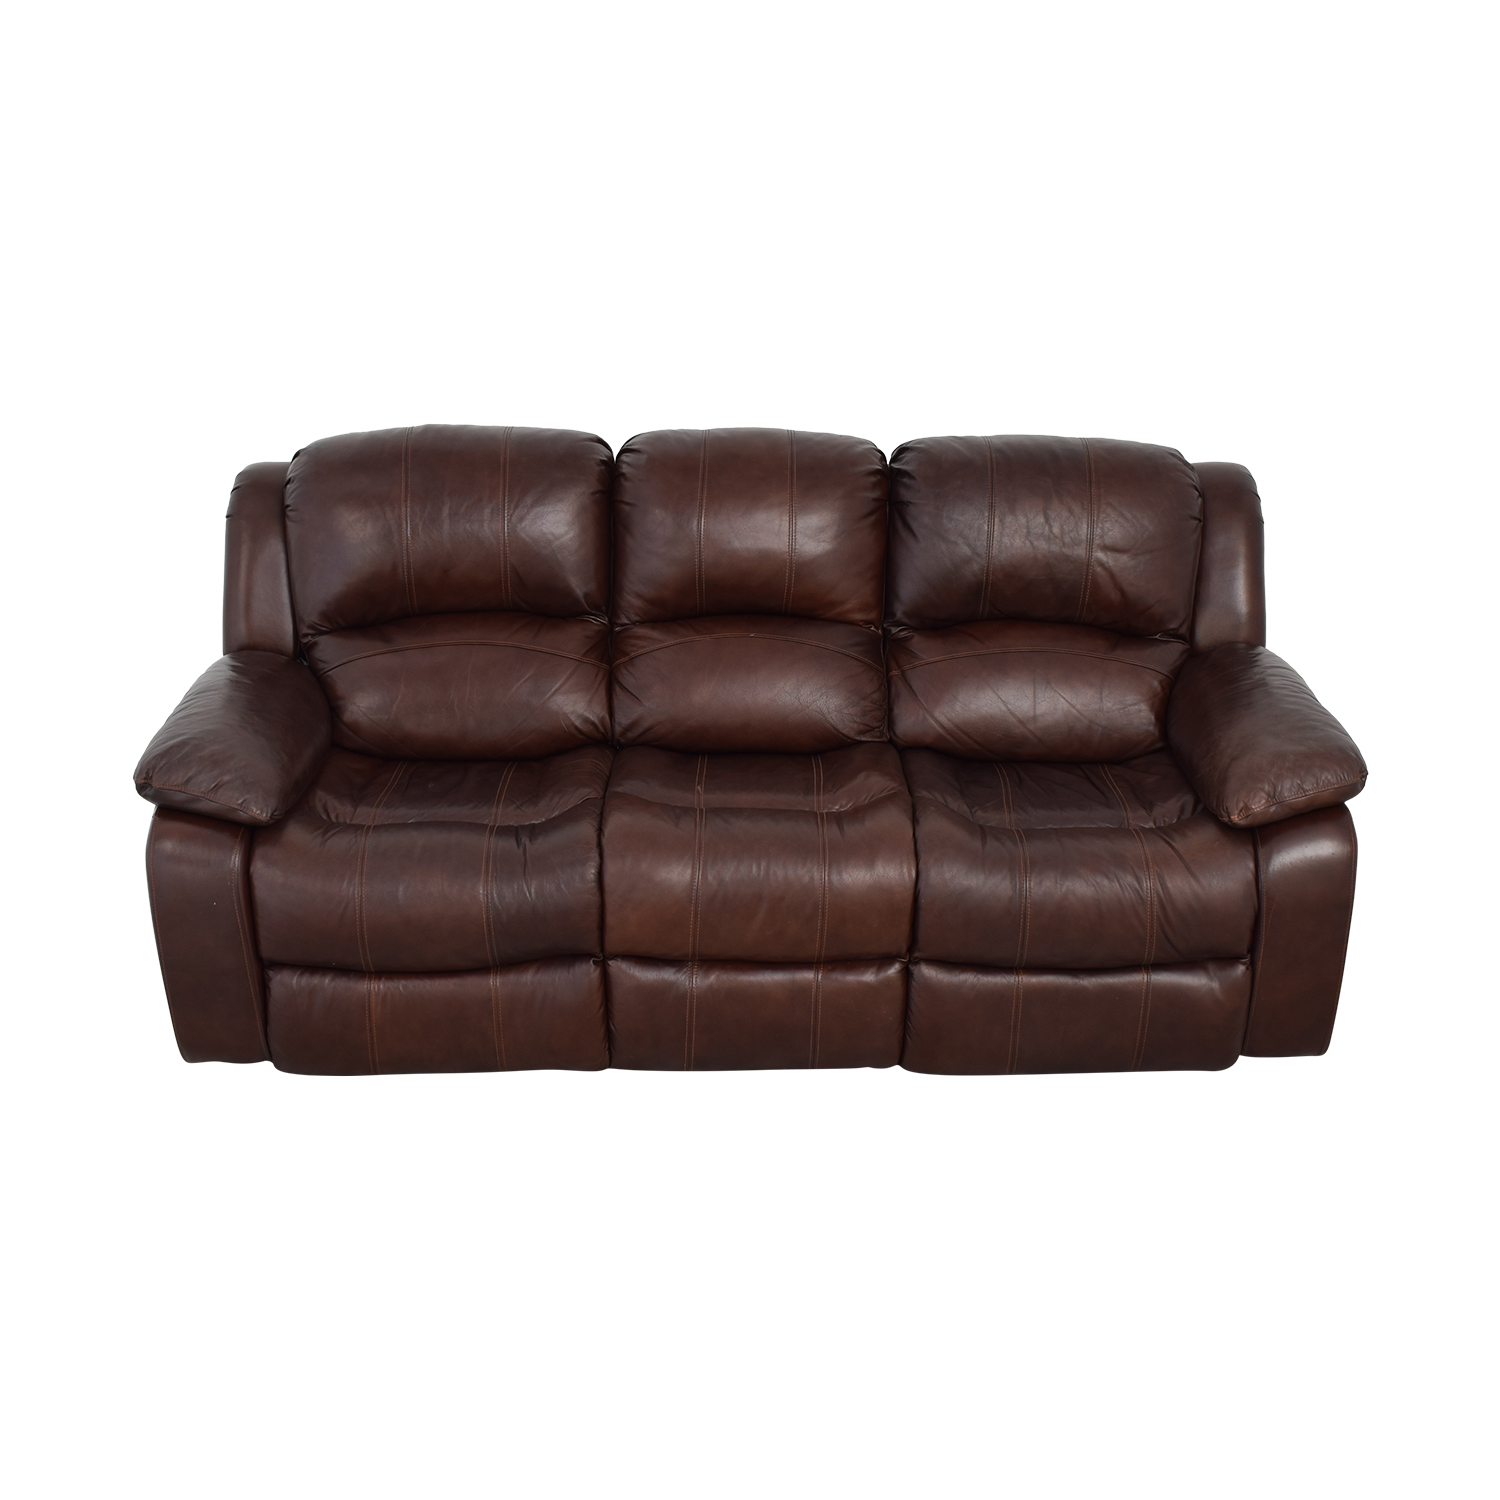 buy Raymour & Flanigan Raymour & Flanigan Brown Leather Reclining Sofa online